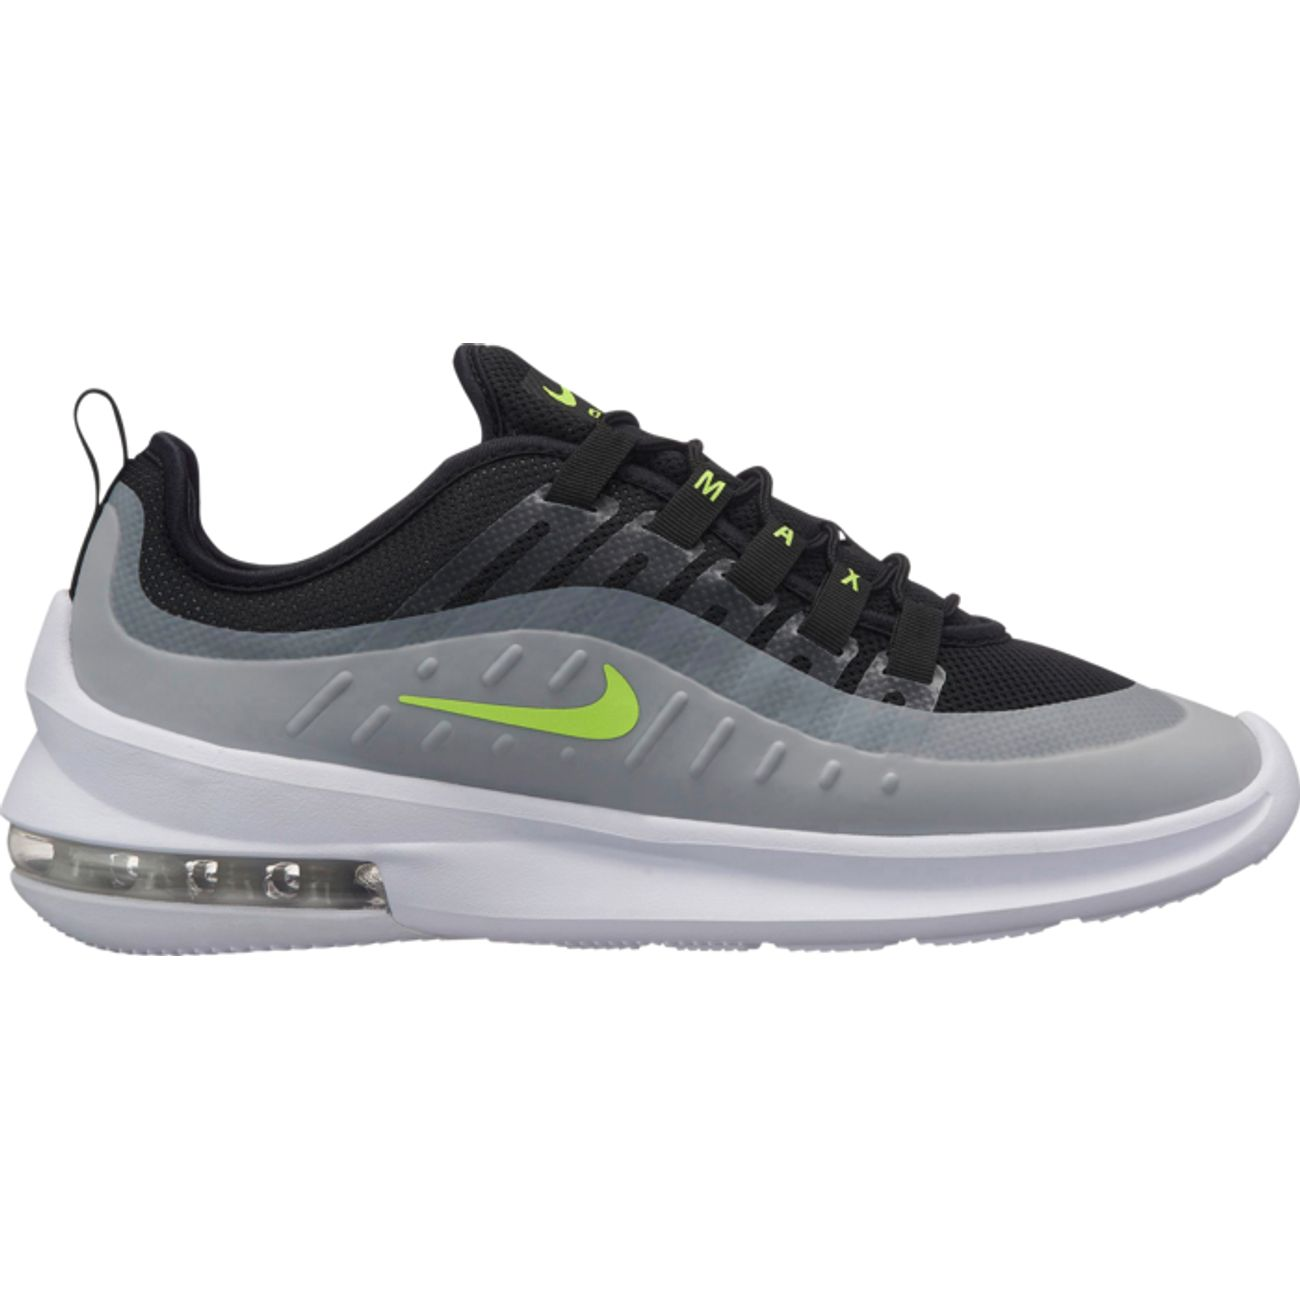 new arrival 6380d 9a8ef CHAUSSURES BASSES running homme NIKE AIR MAX AXIS